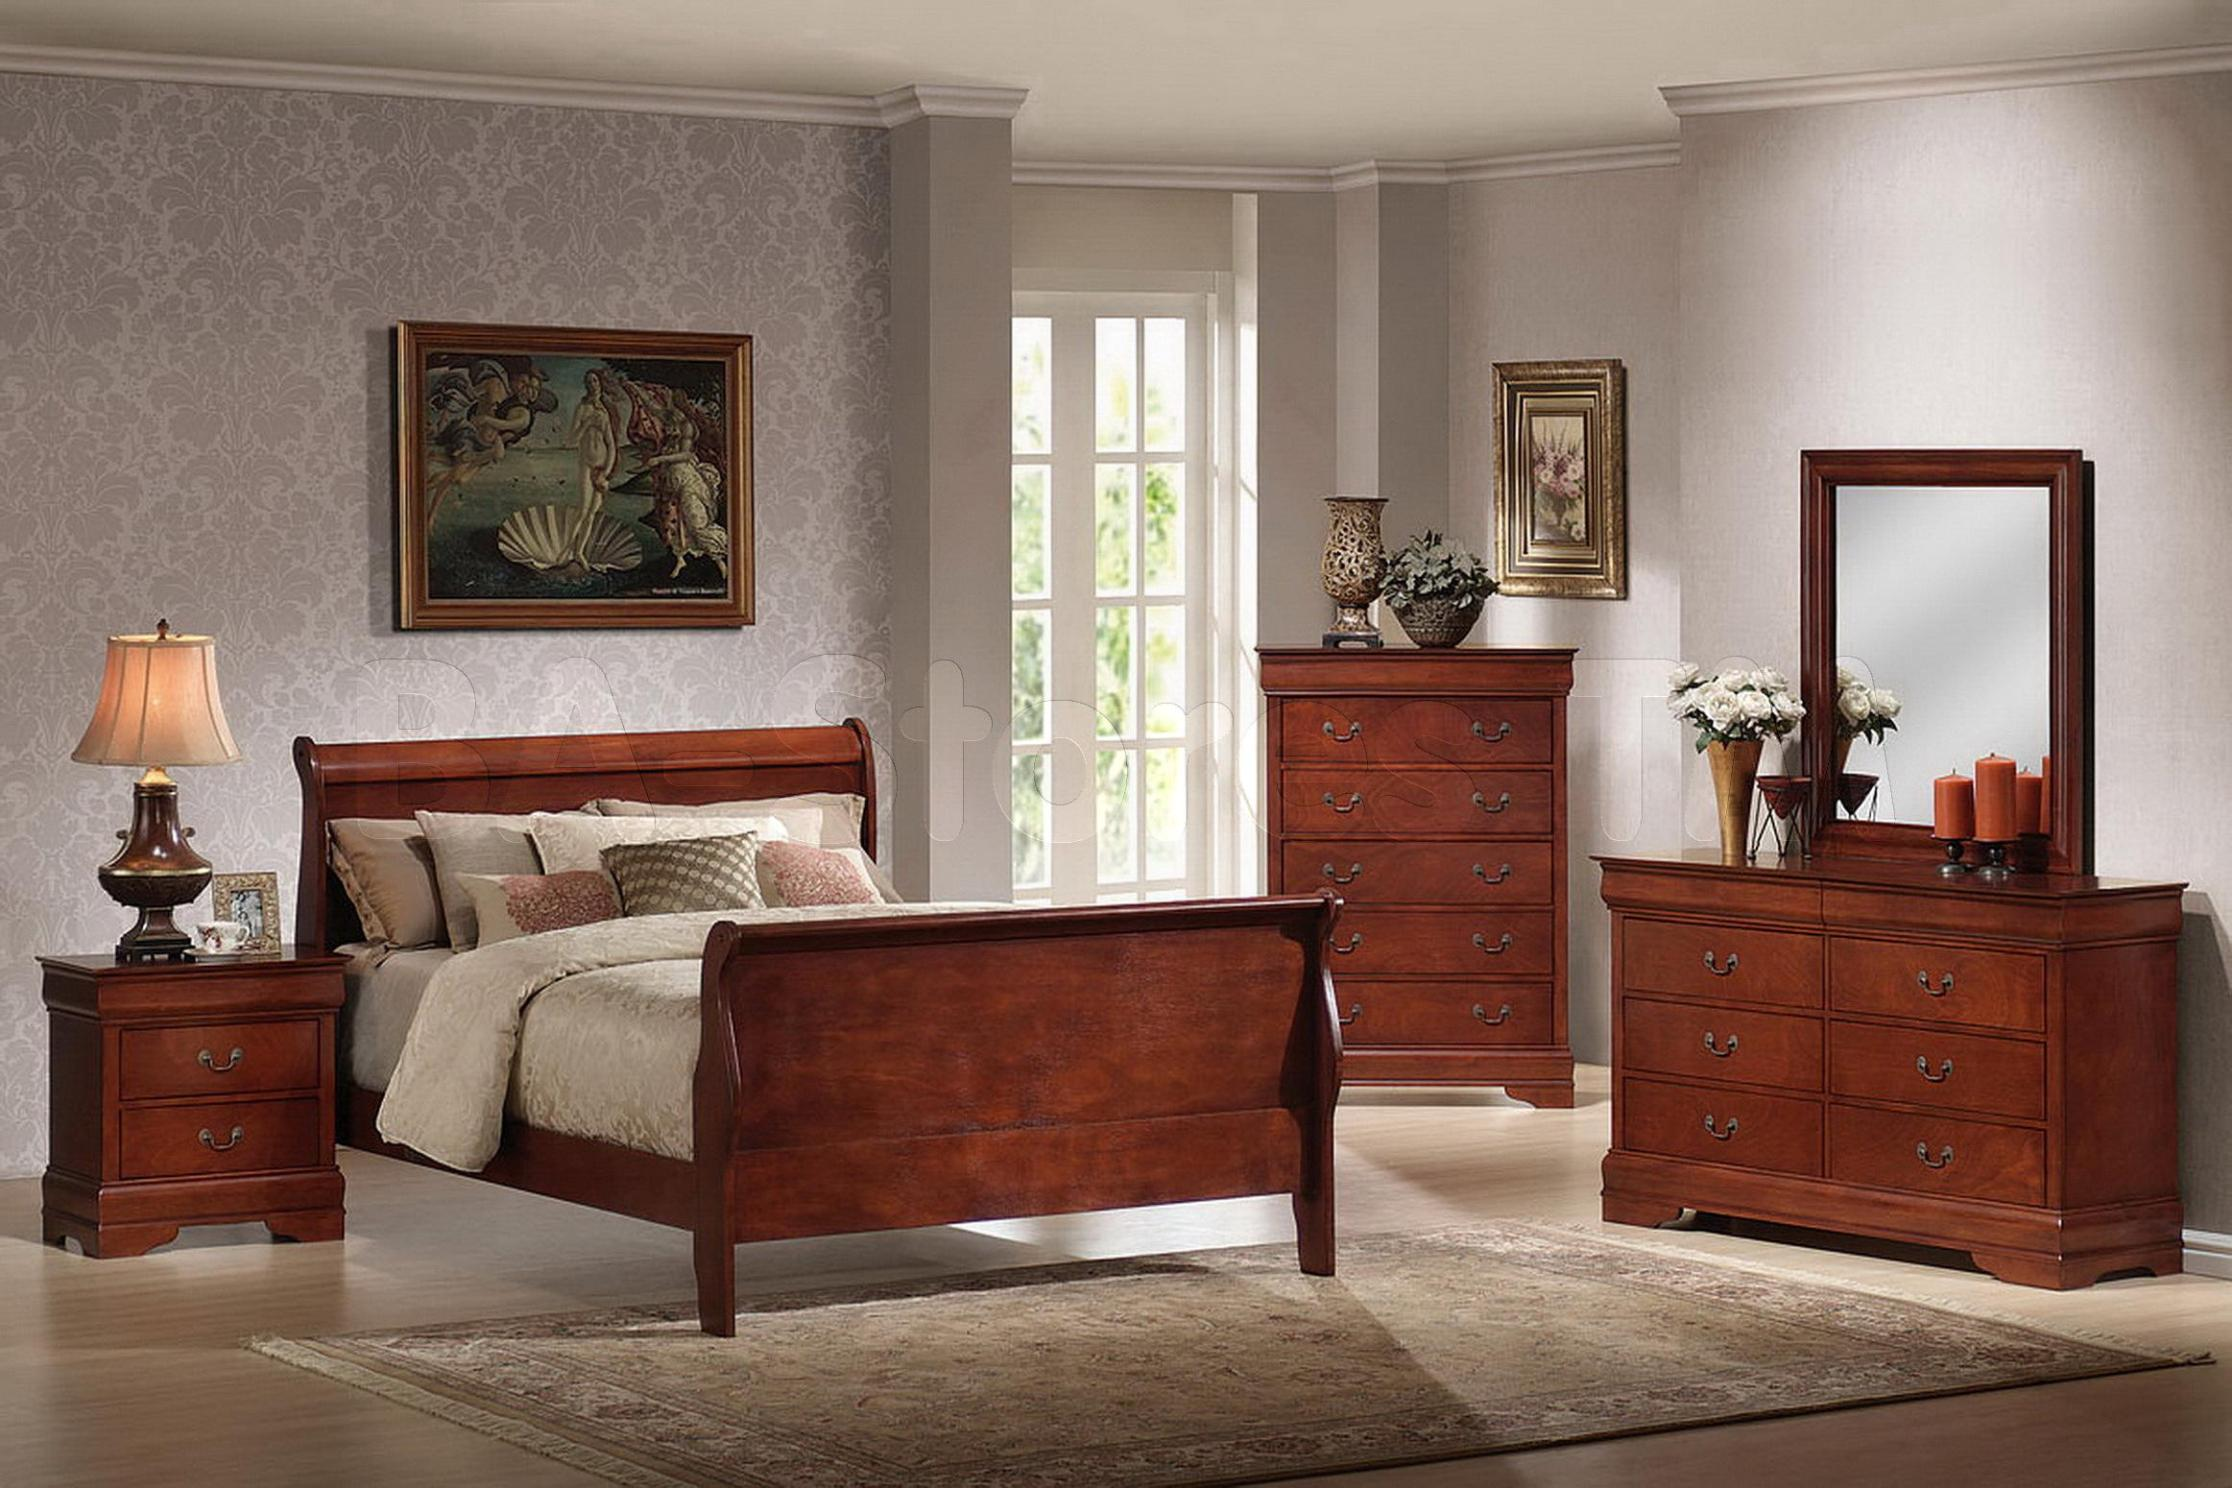 Image of: Antique Cherry Wood Dressers